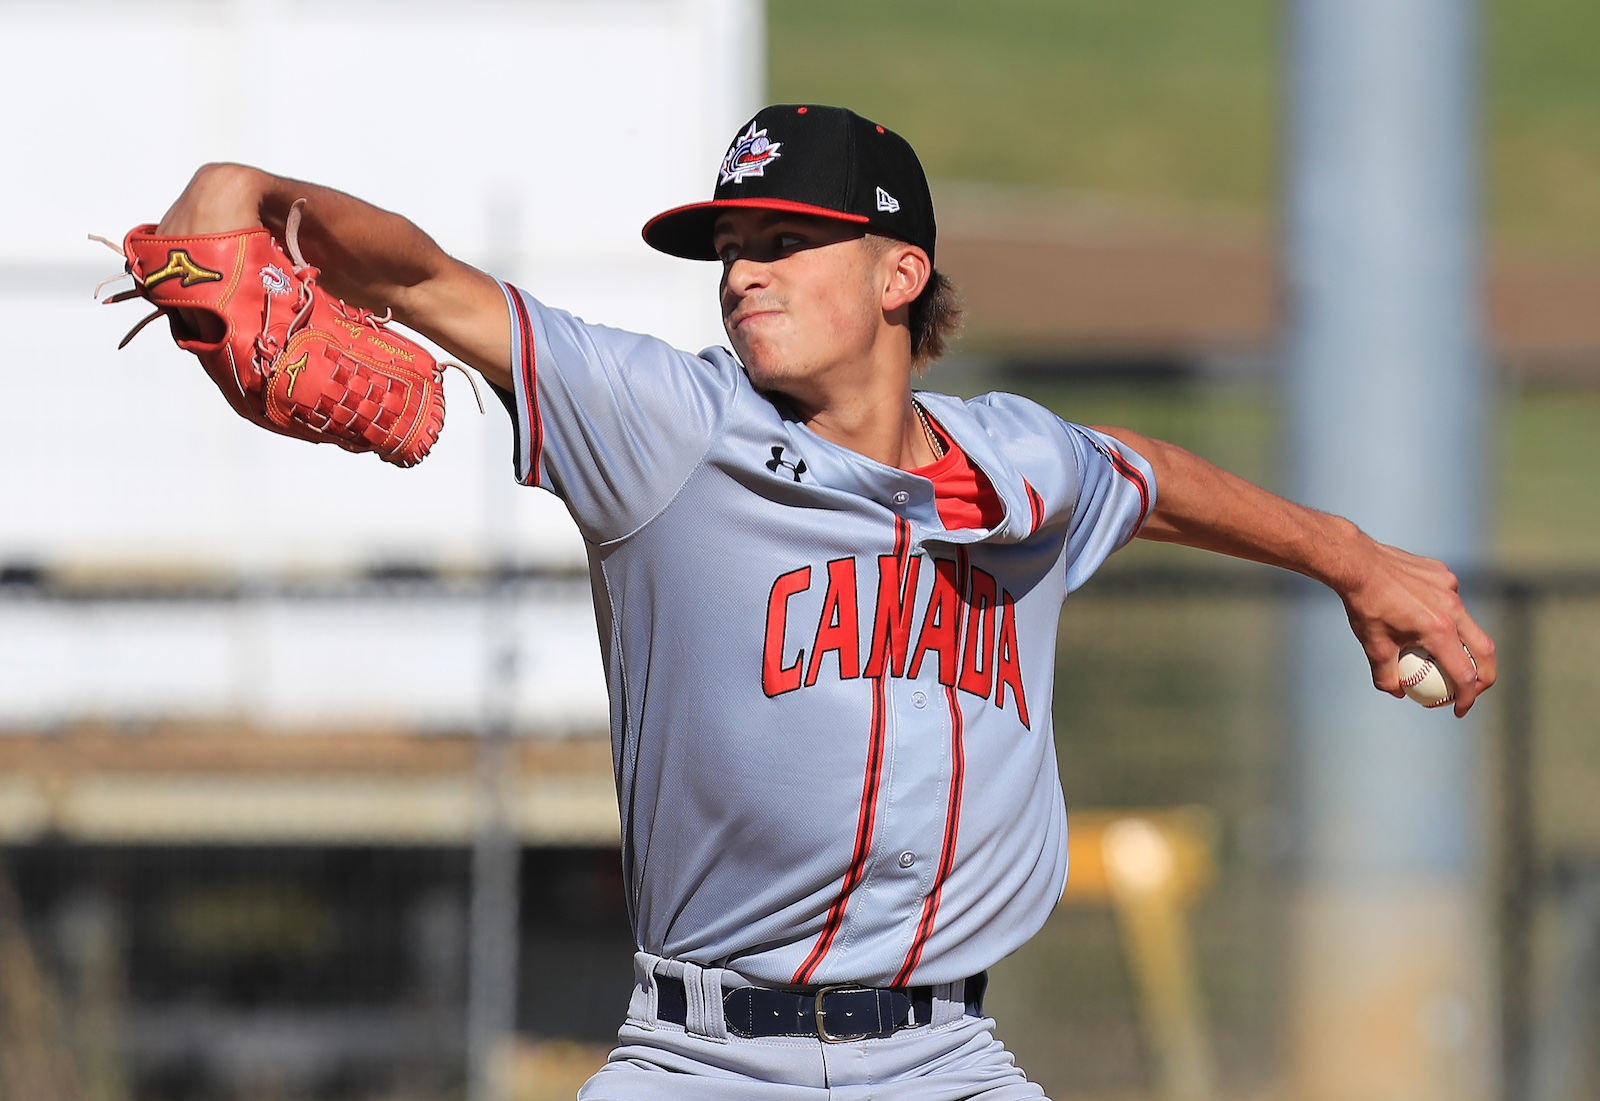 Baseball Canada announces roster for WBSC U-18 Baseball World Cup